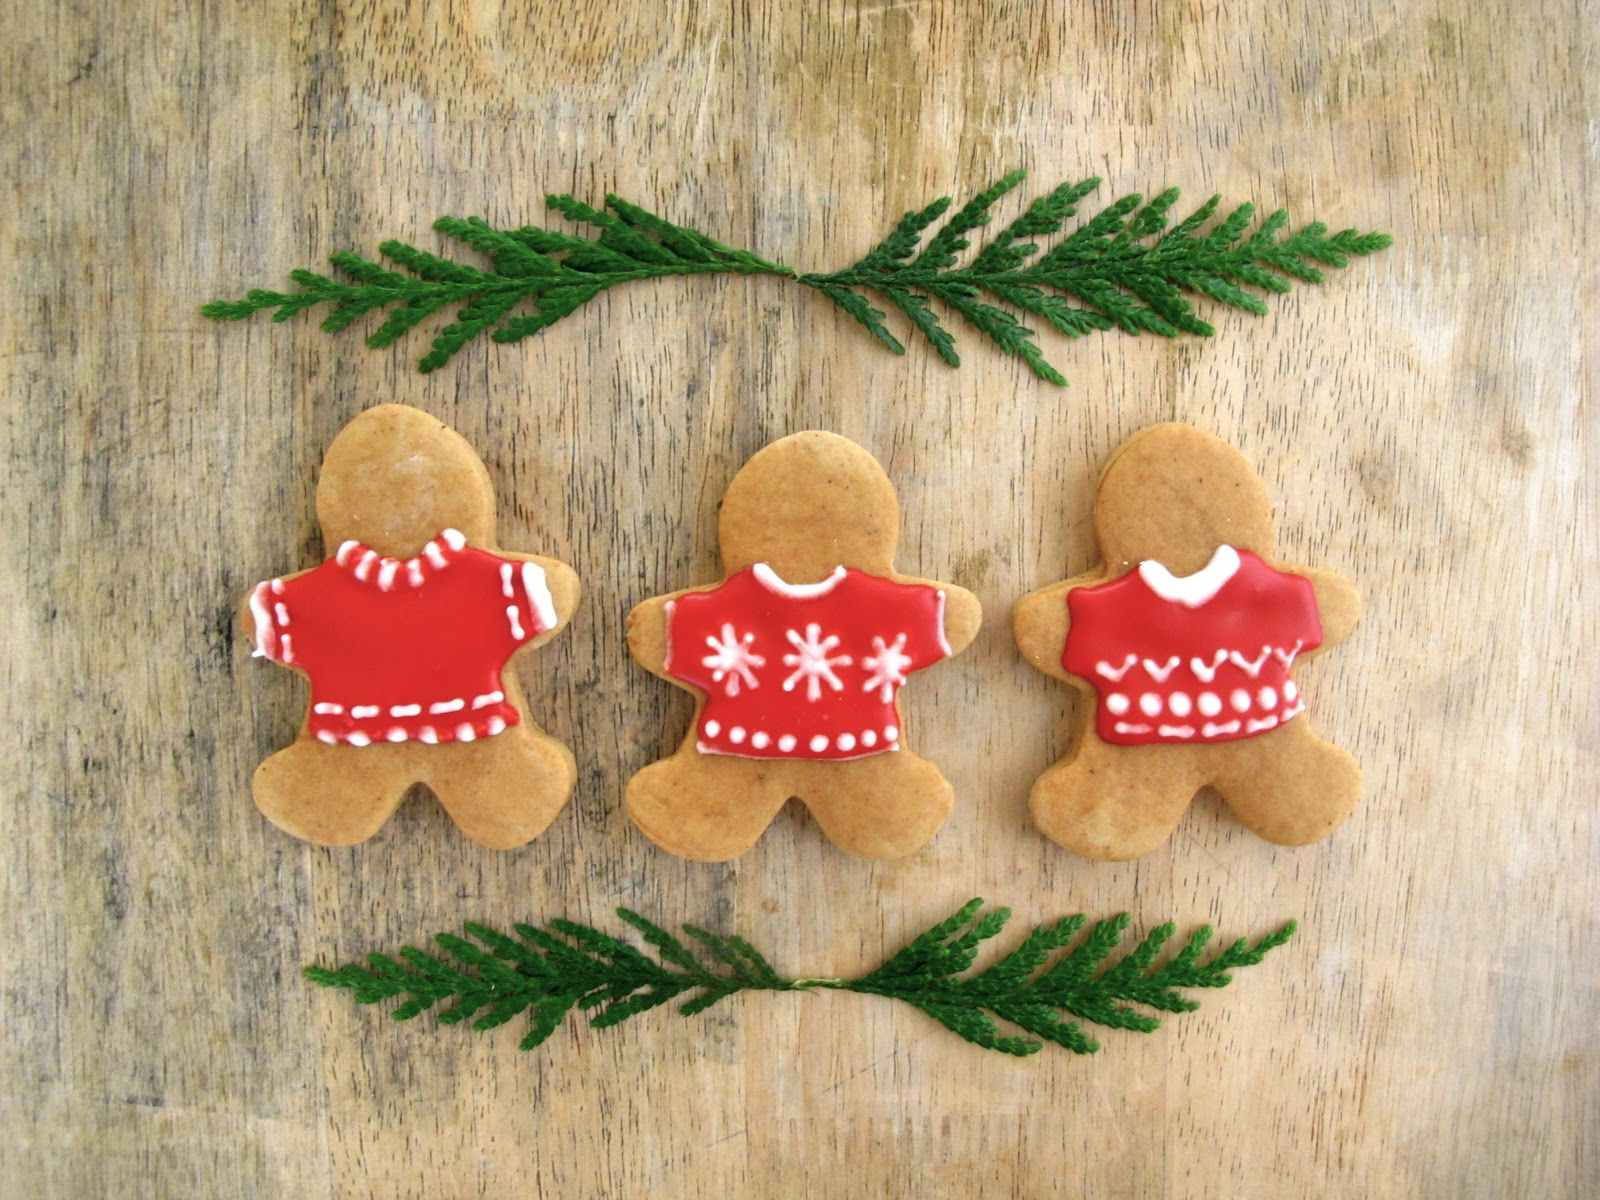 decorated gingerbred men | ... Gingerbread Cookies | Christmas Cookies | Decorating Gingerbread Men